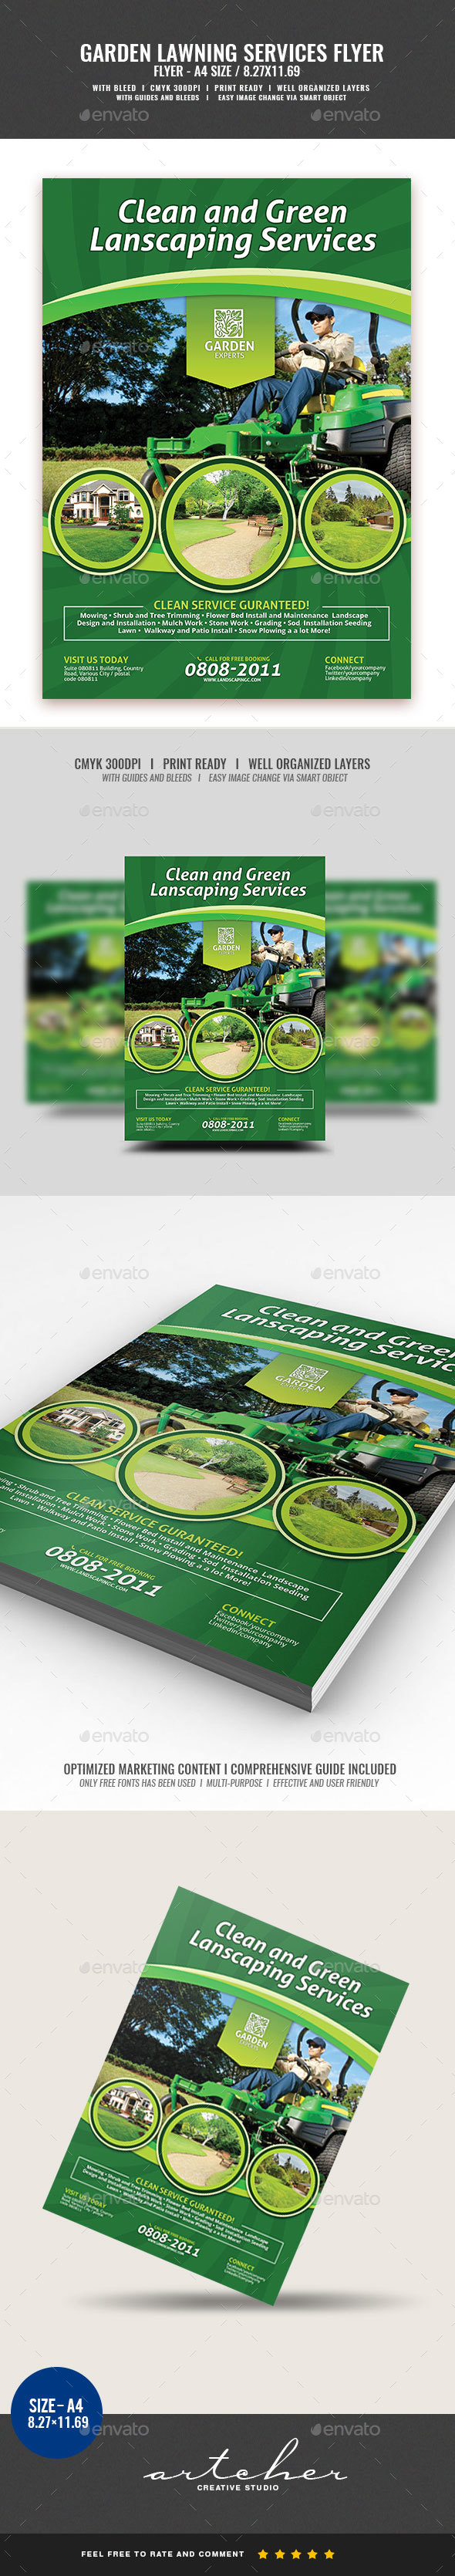 Landscaping Services Flyer - Corporate Flyers